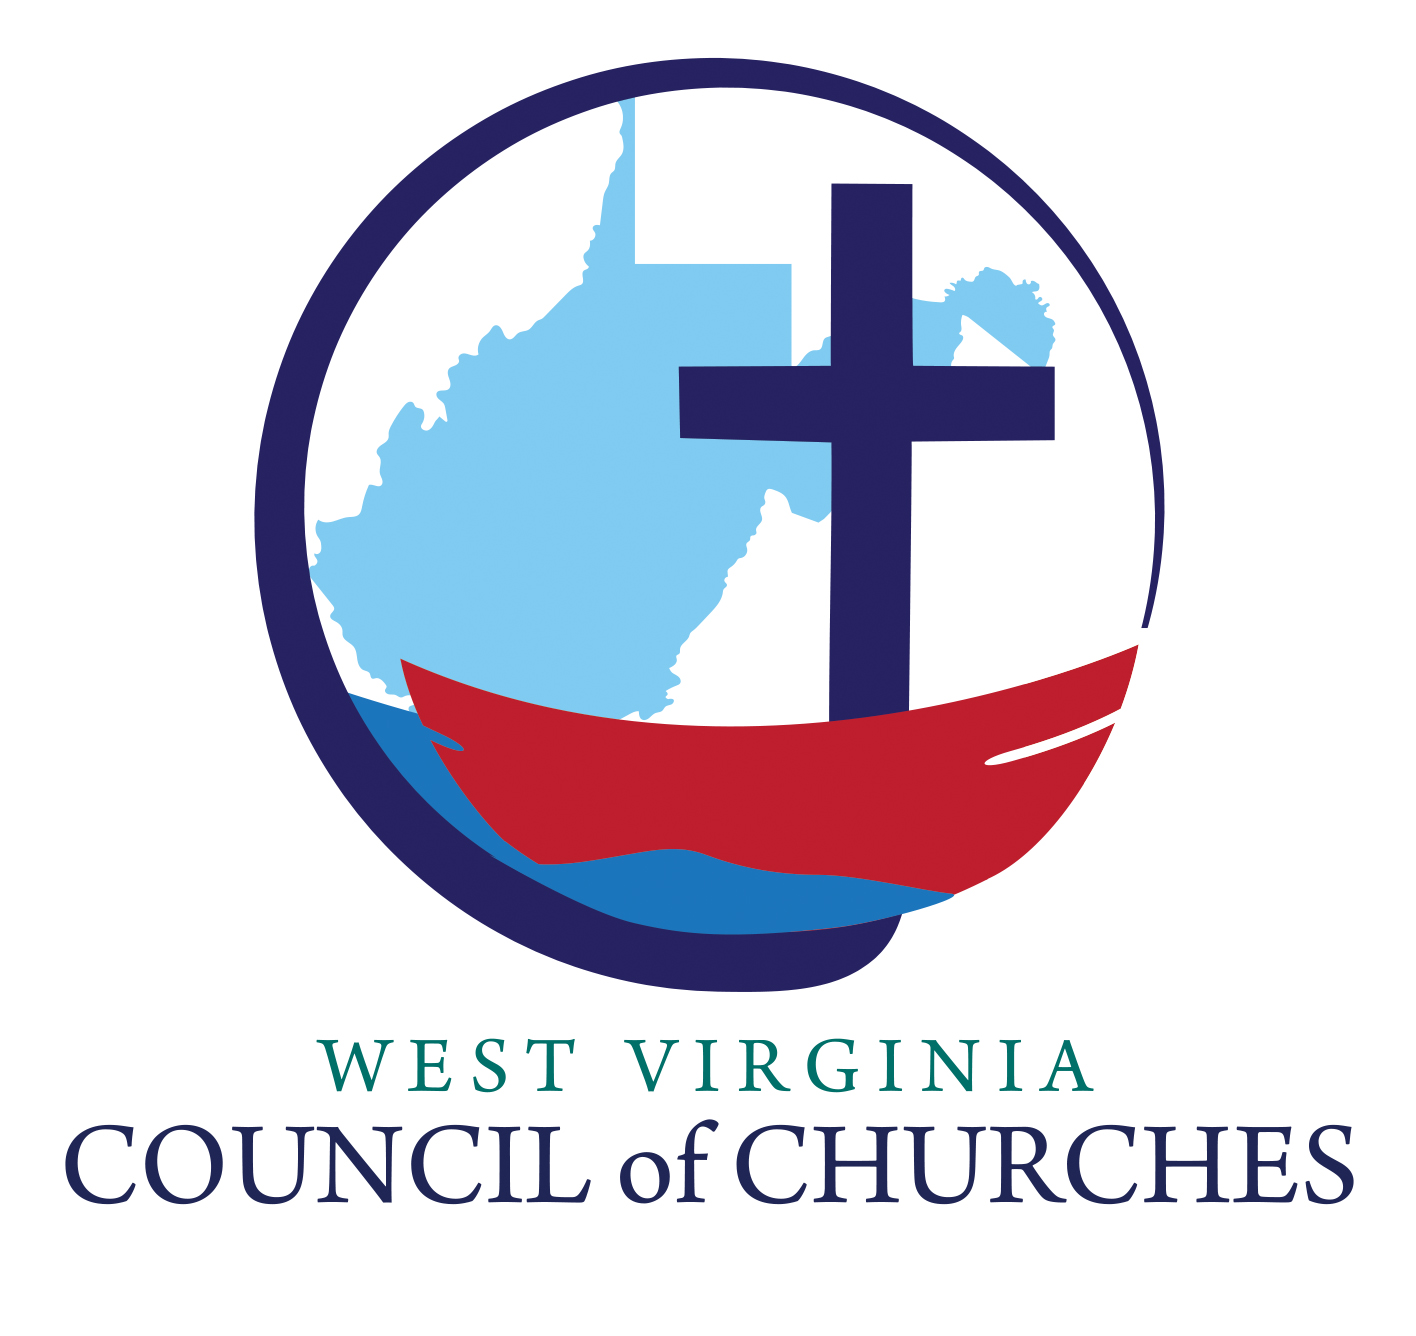 West Virginia Council of Churches